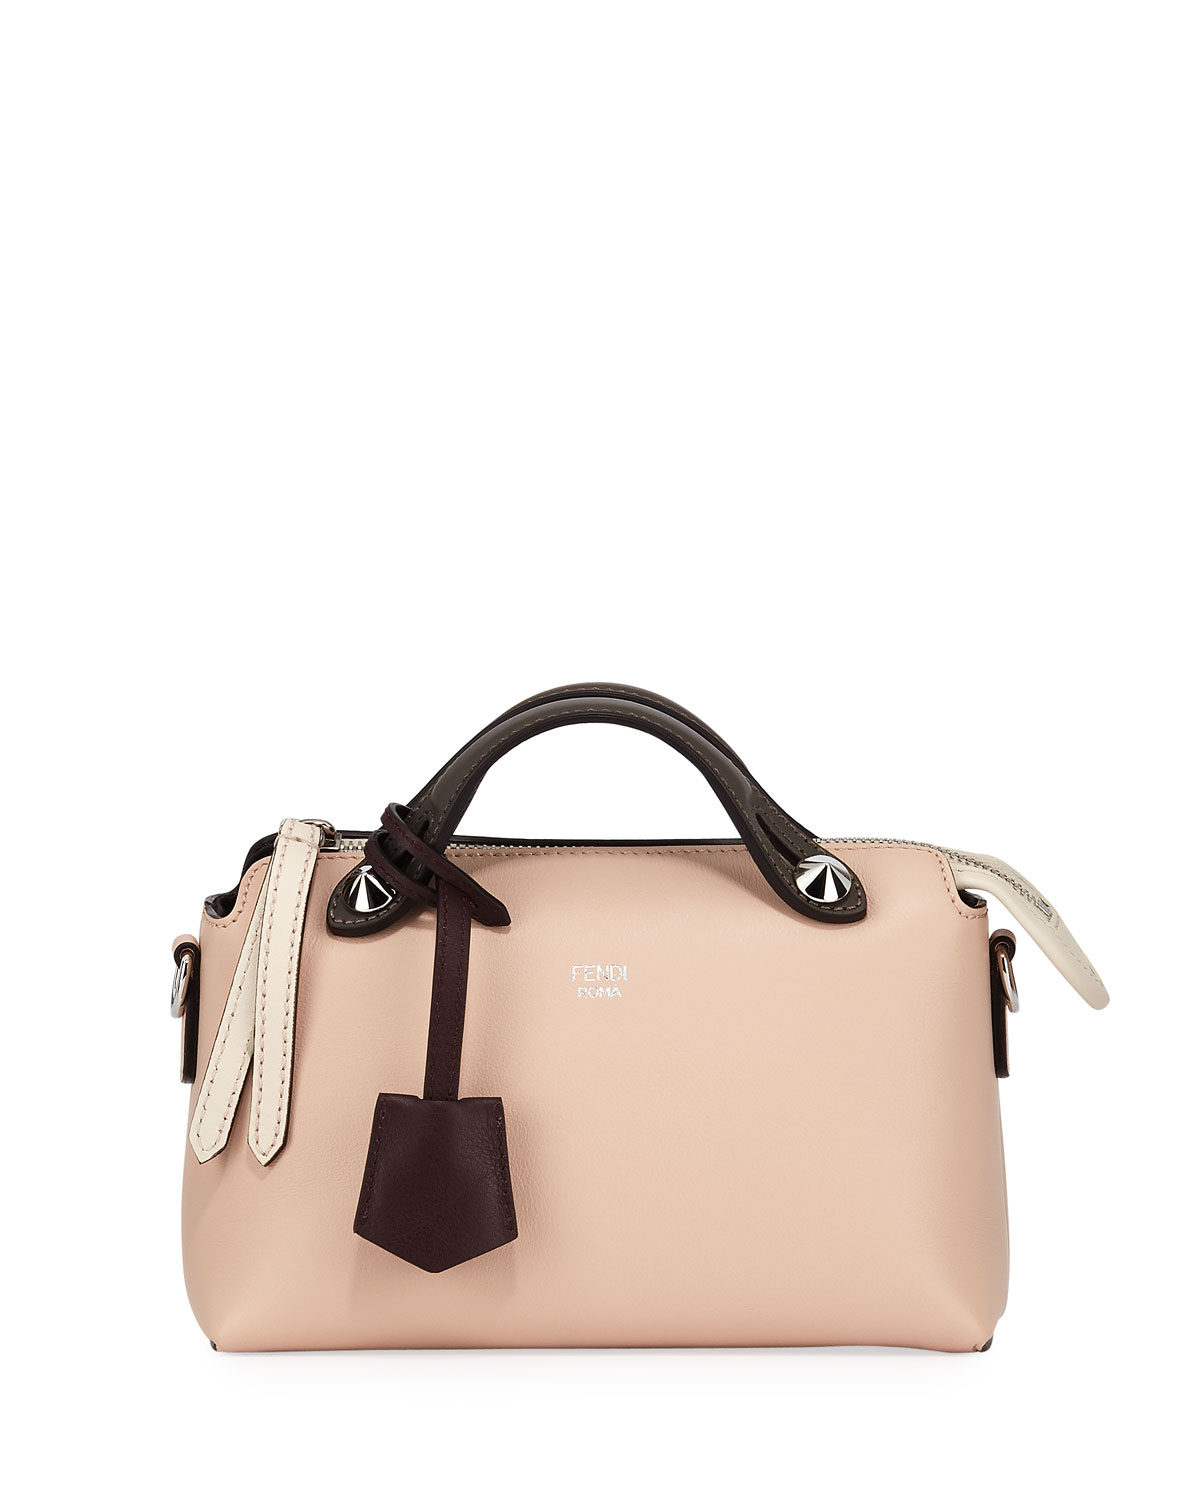 fendi by the way review